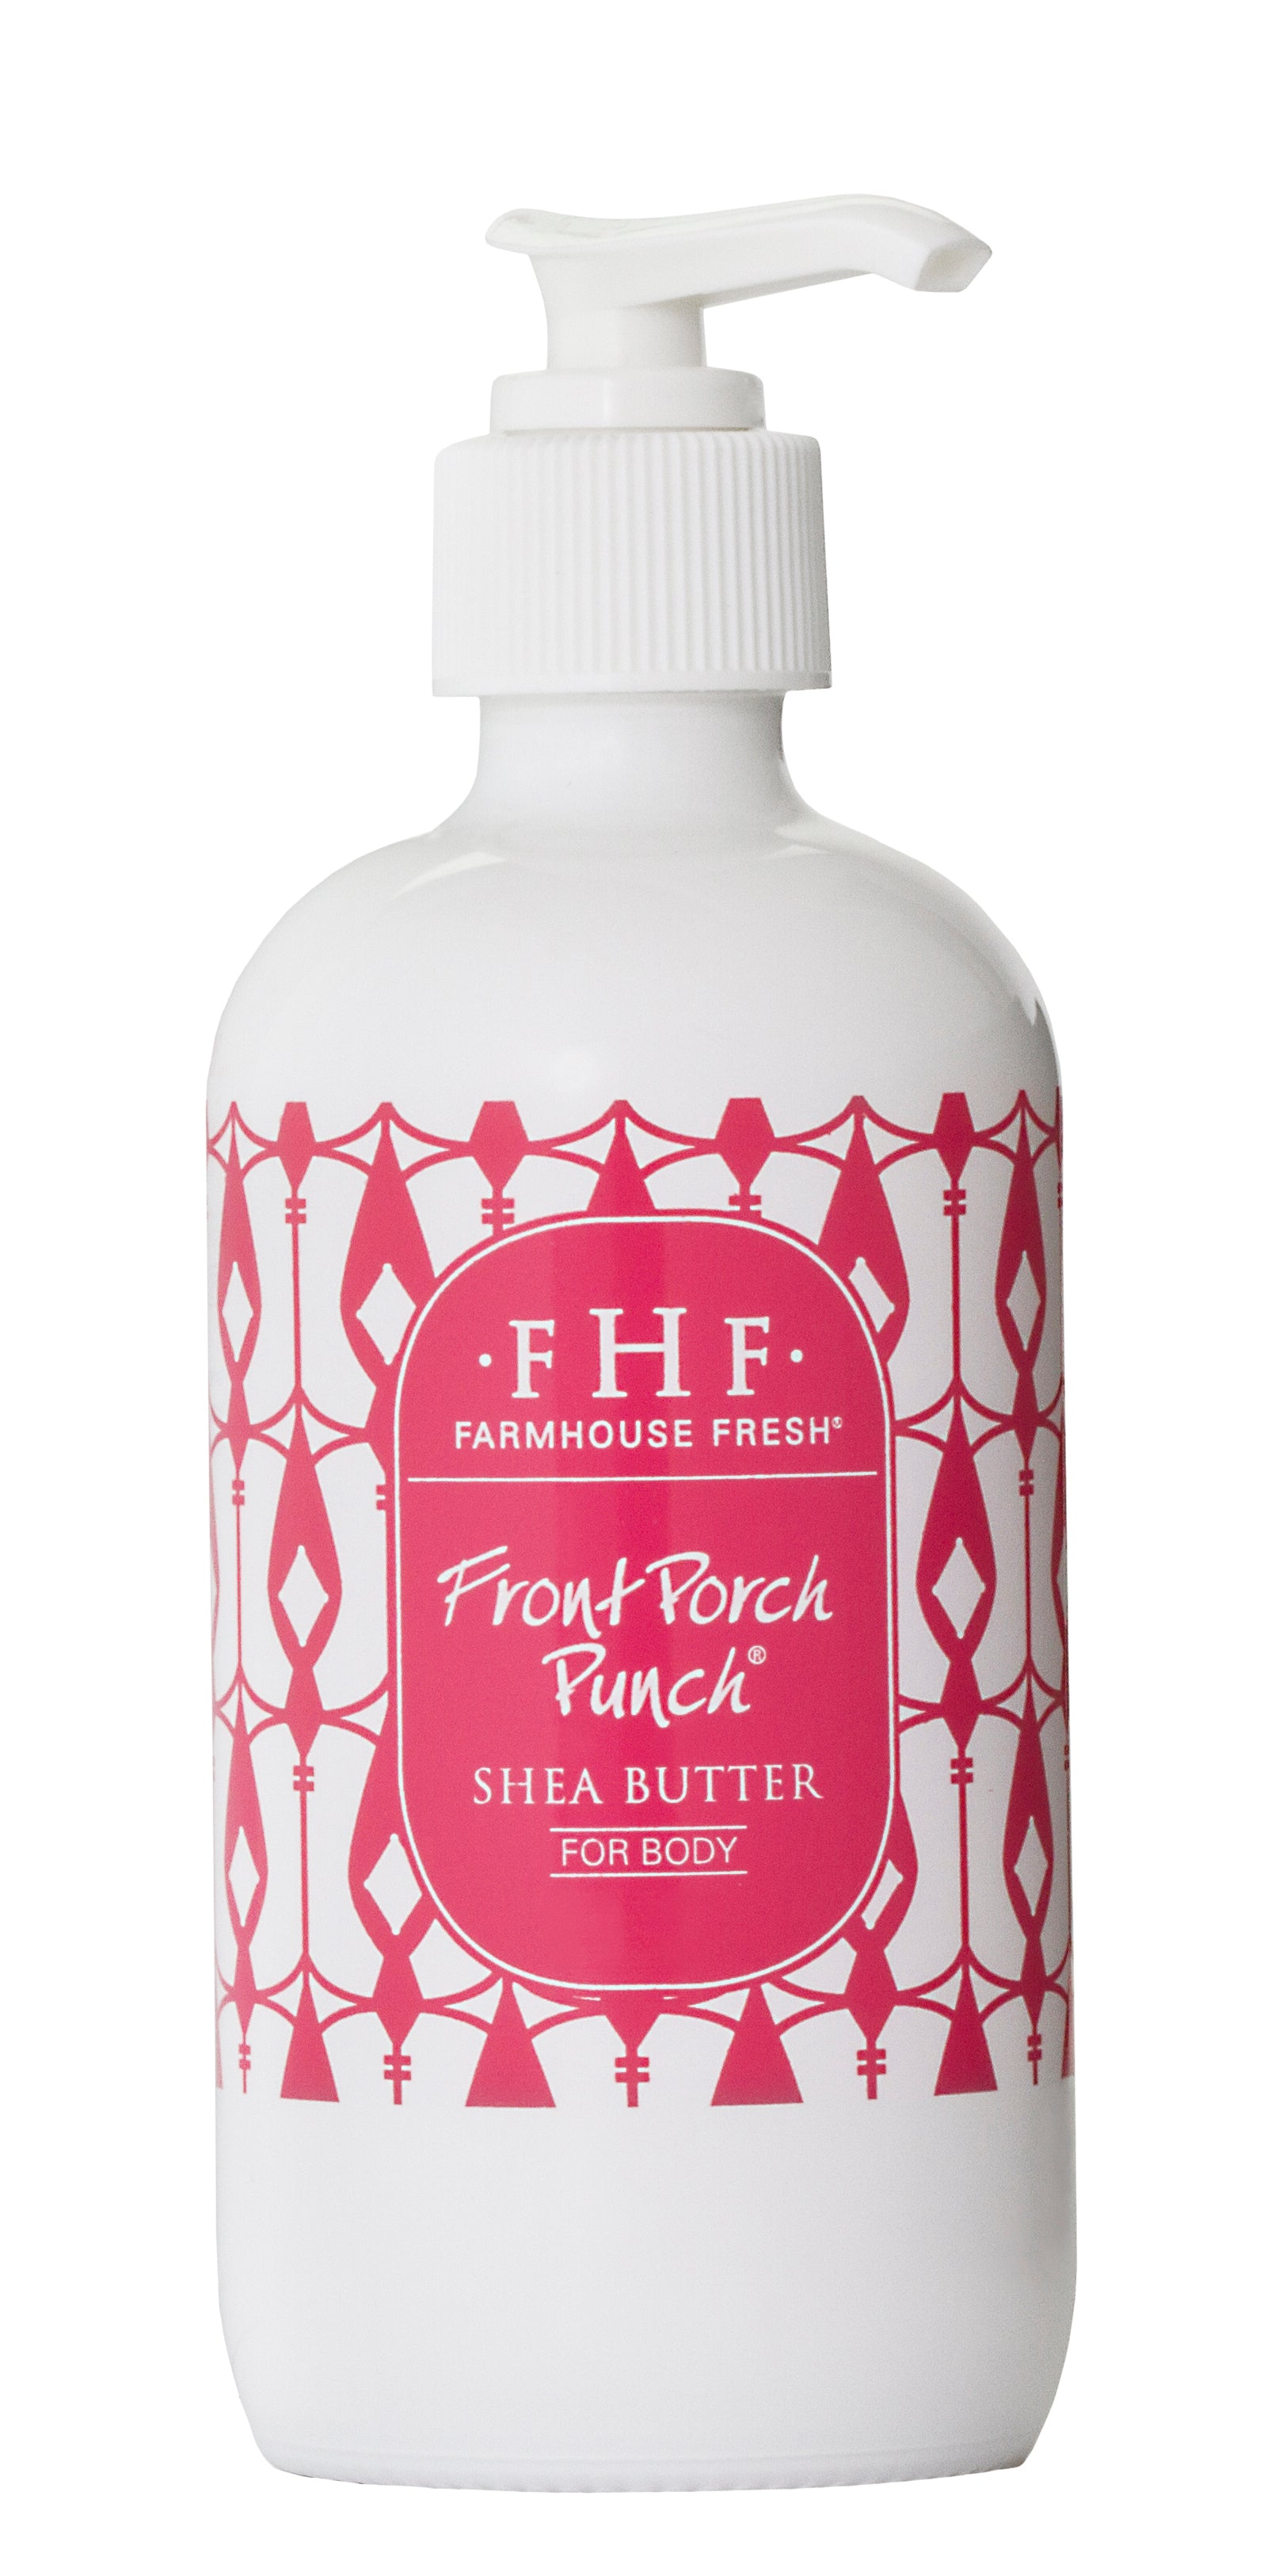 A rich shea butter cream-Front Porch Punch nourishes dry skin. in 8 oz glass jar. with decorative box.